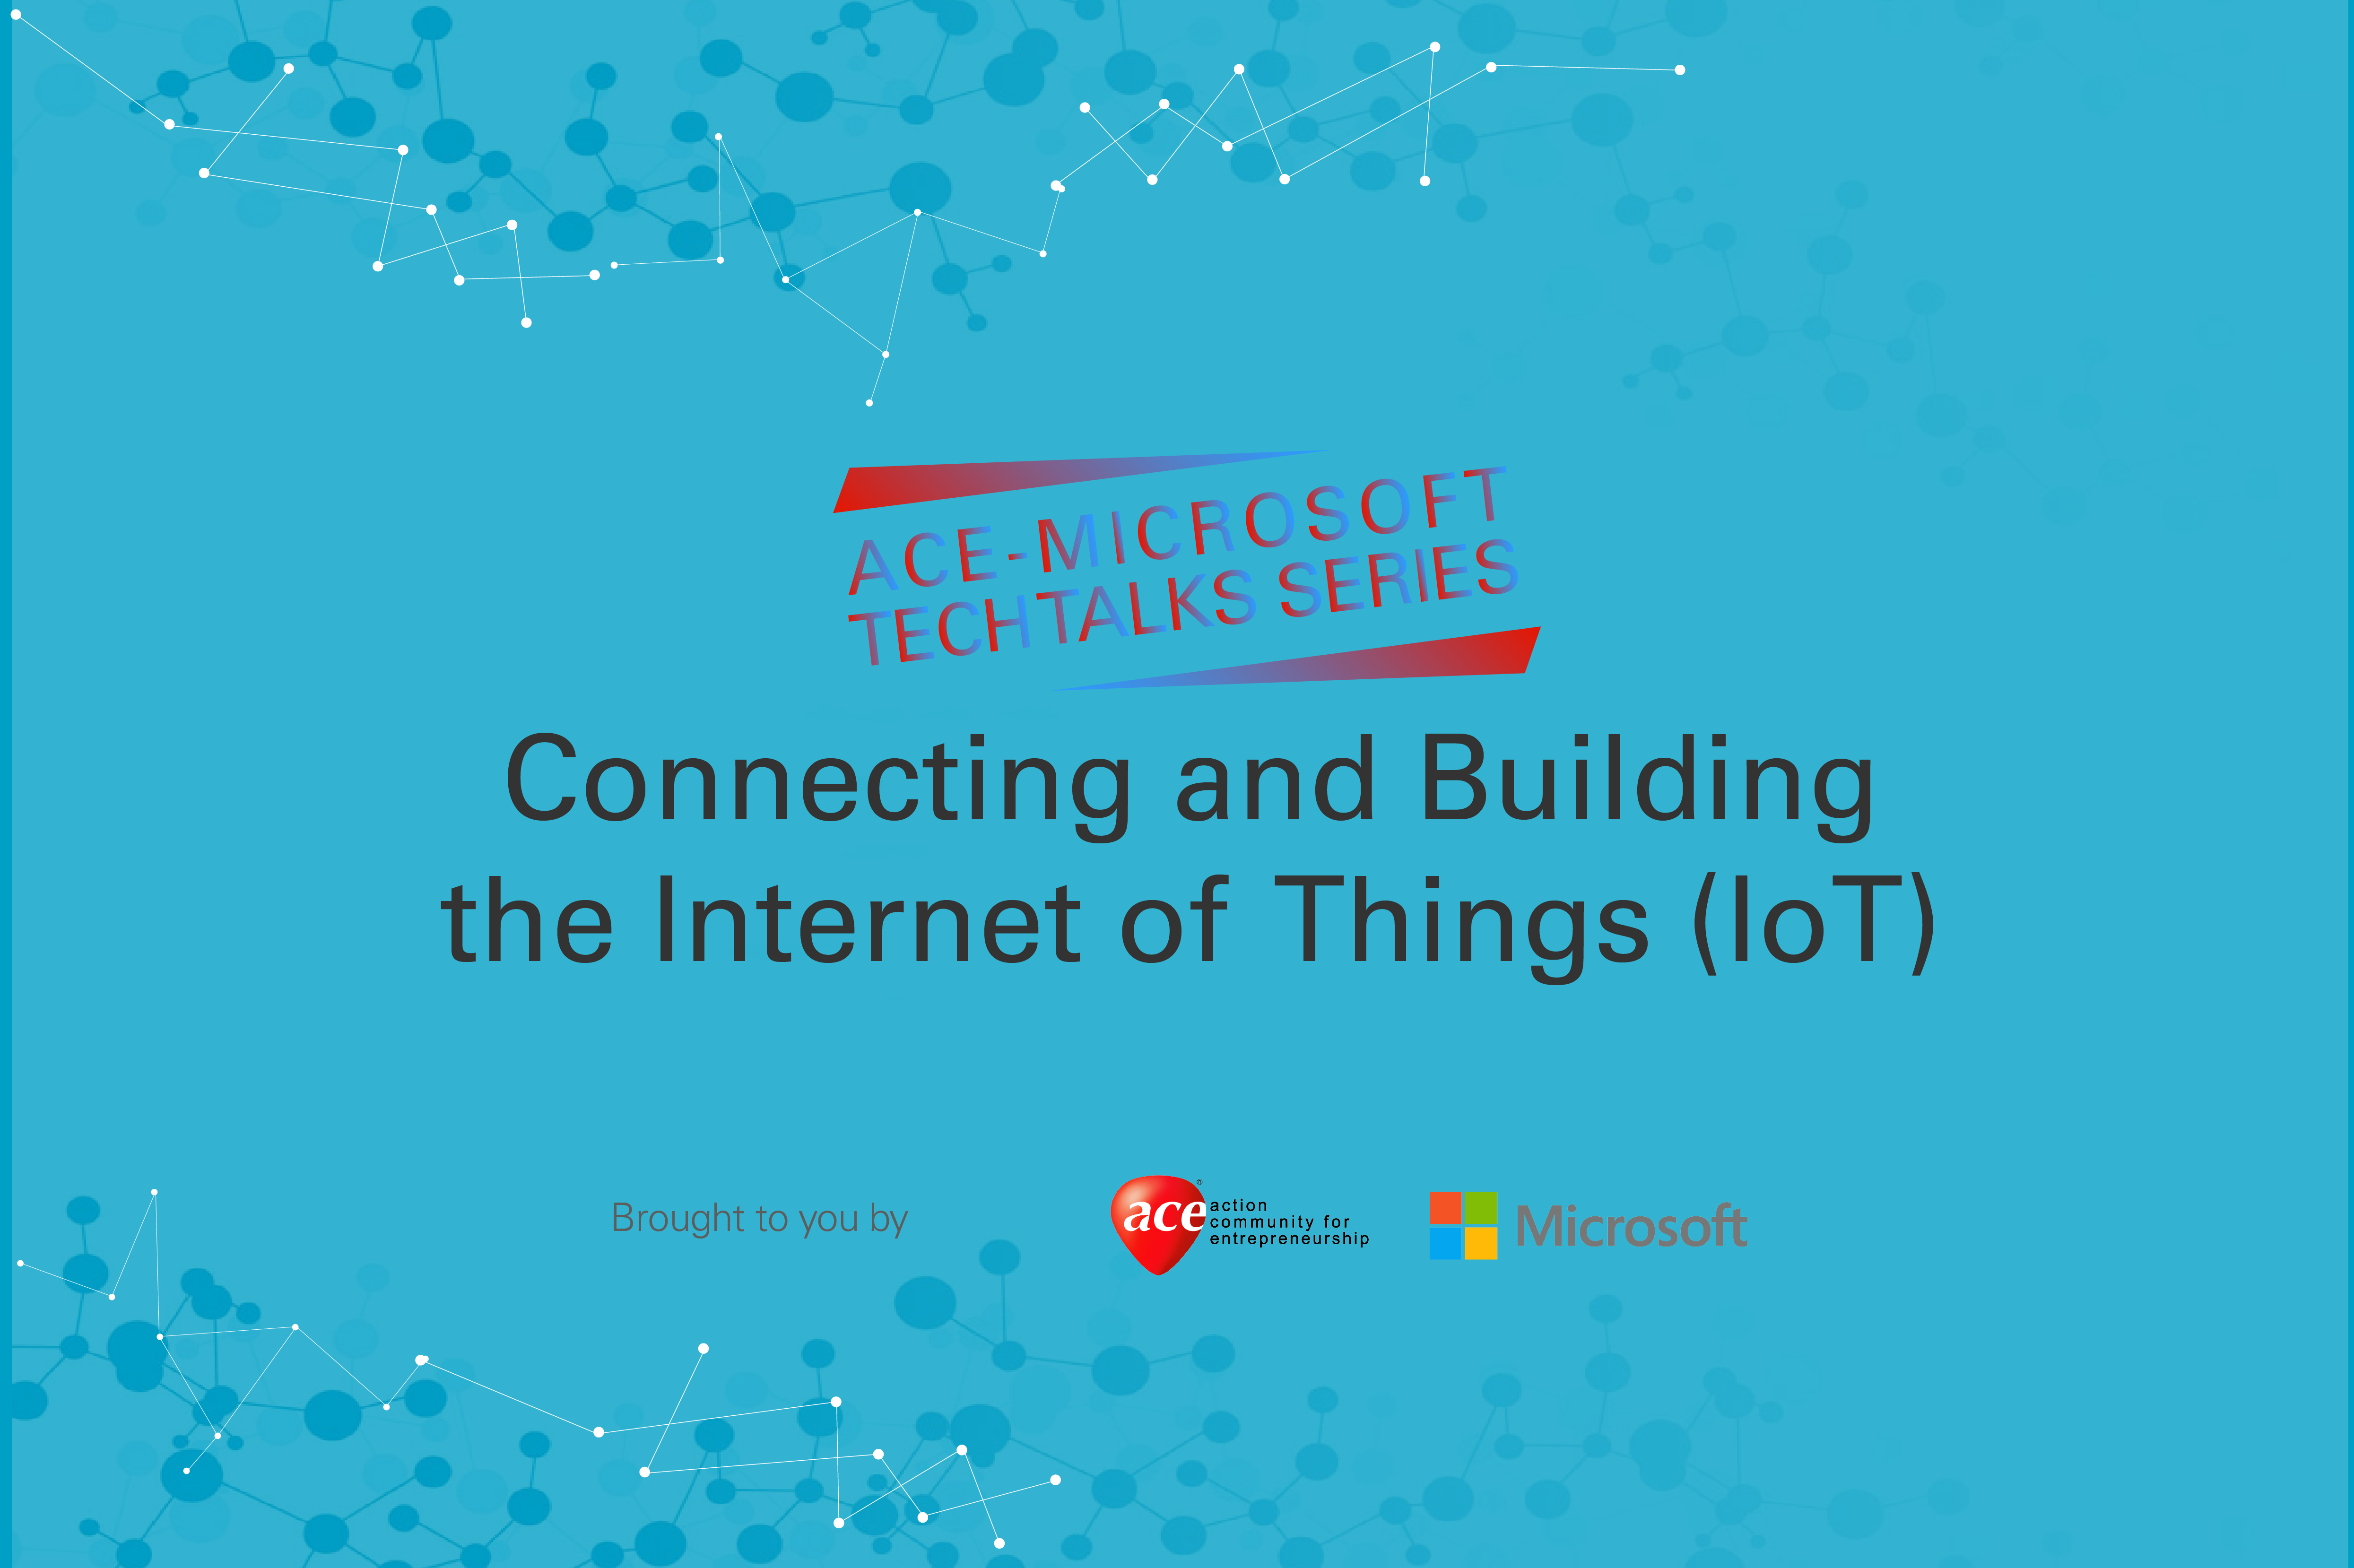 Connecting and Building the Internet of Things (IoT)